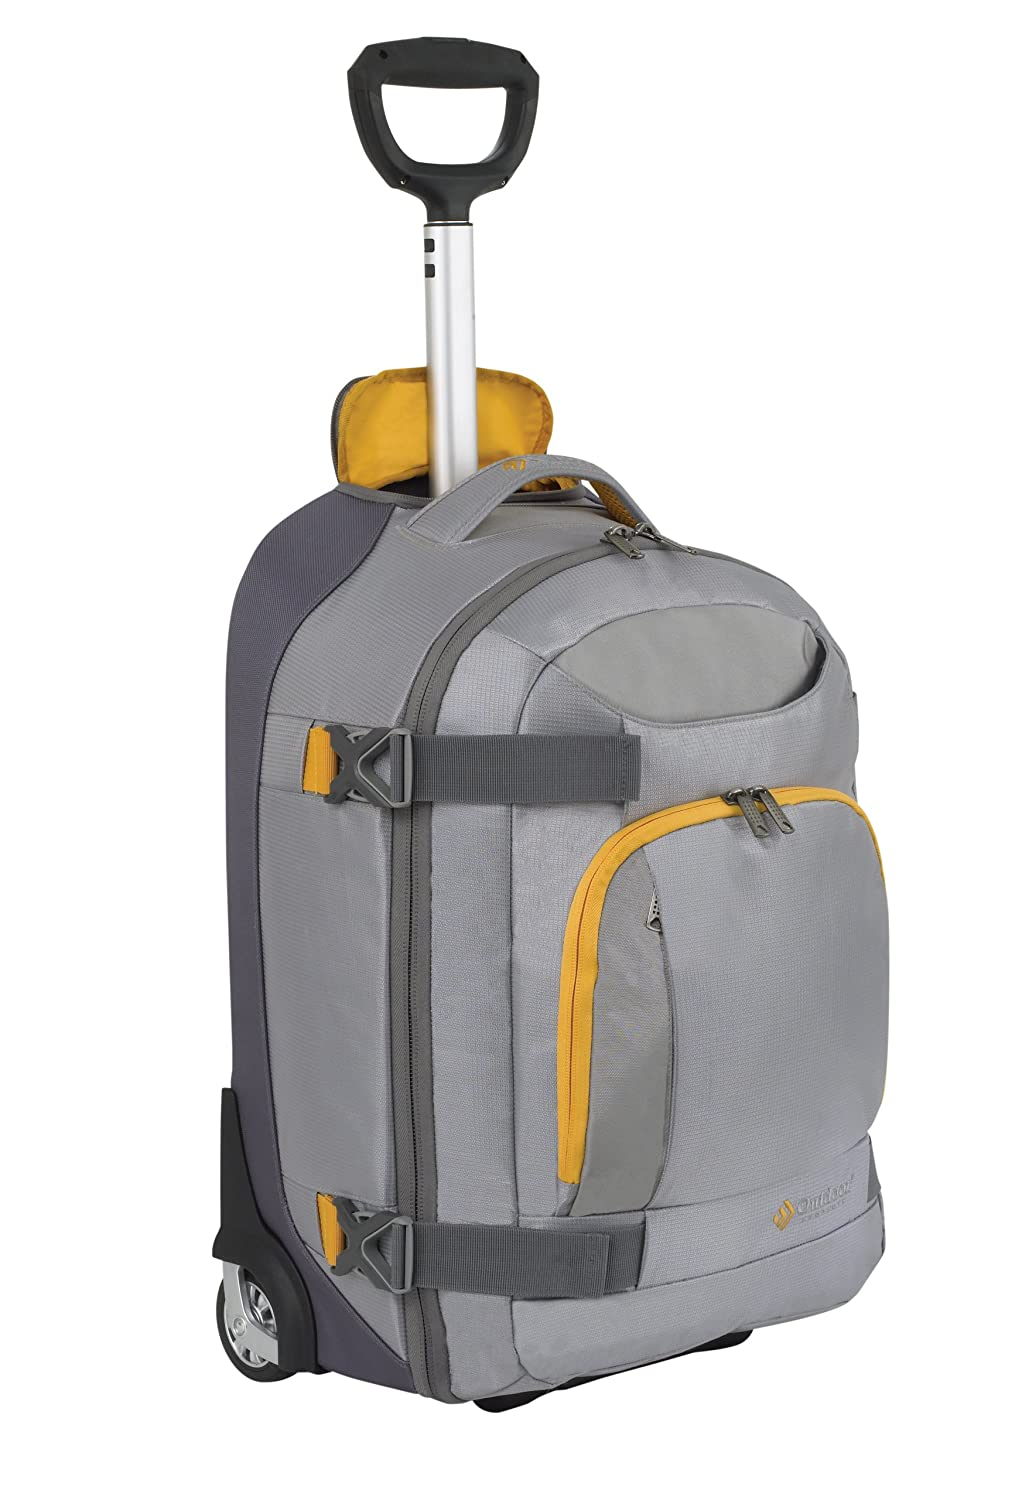 Outdoor Products Camino Carry-On Trolley, Neutral Grey